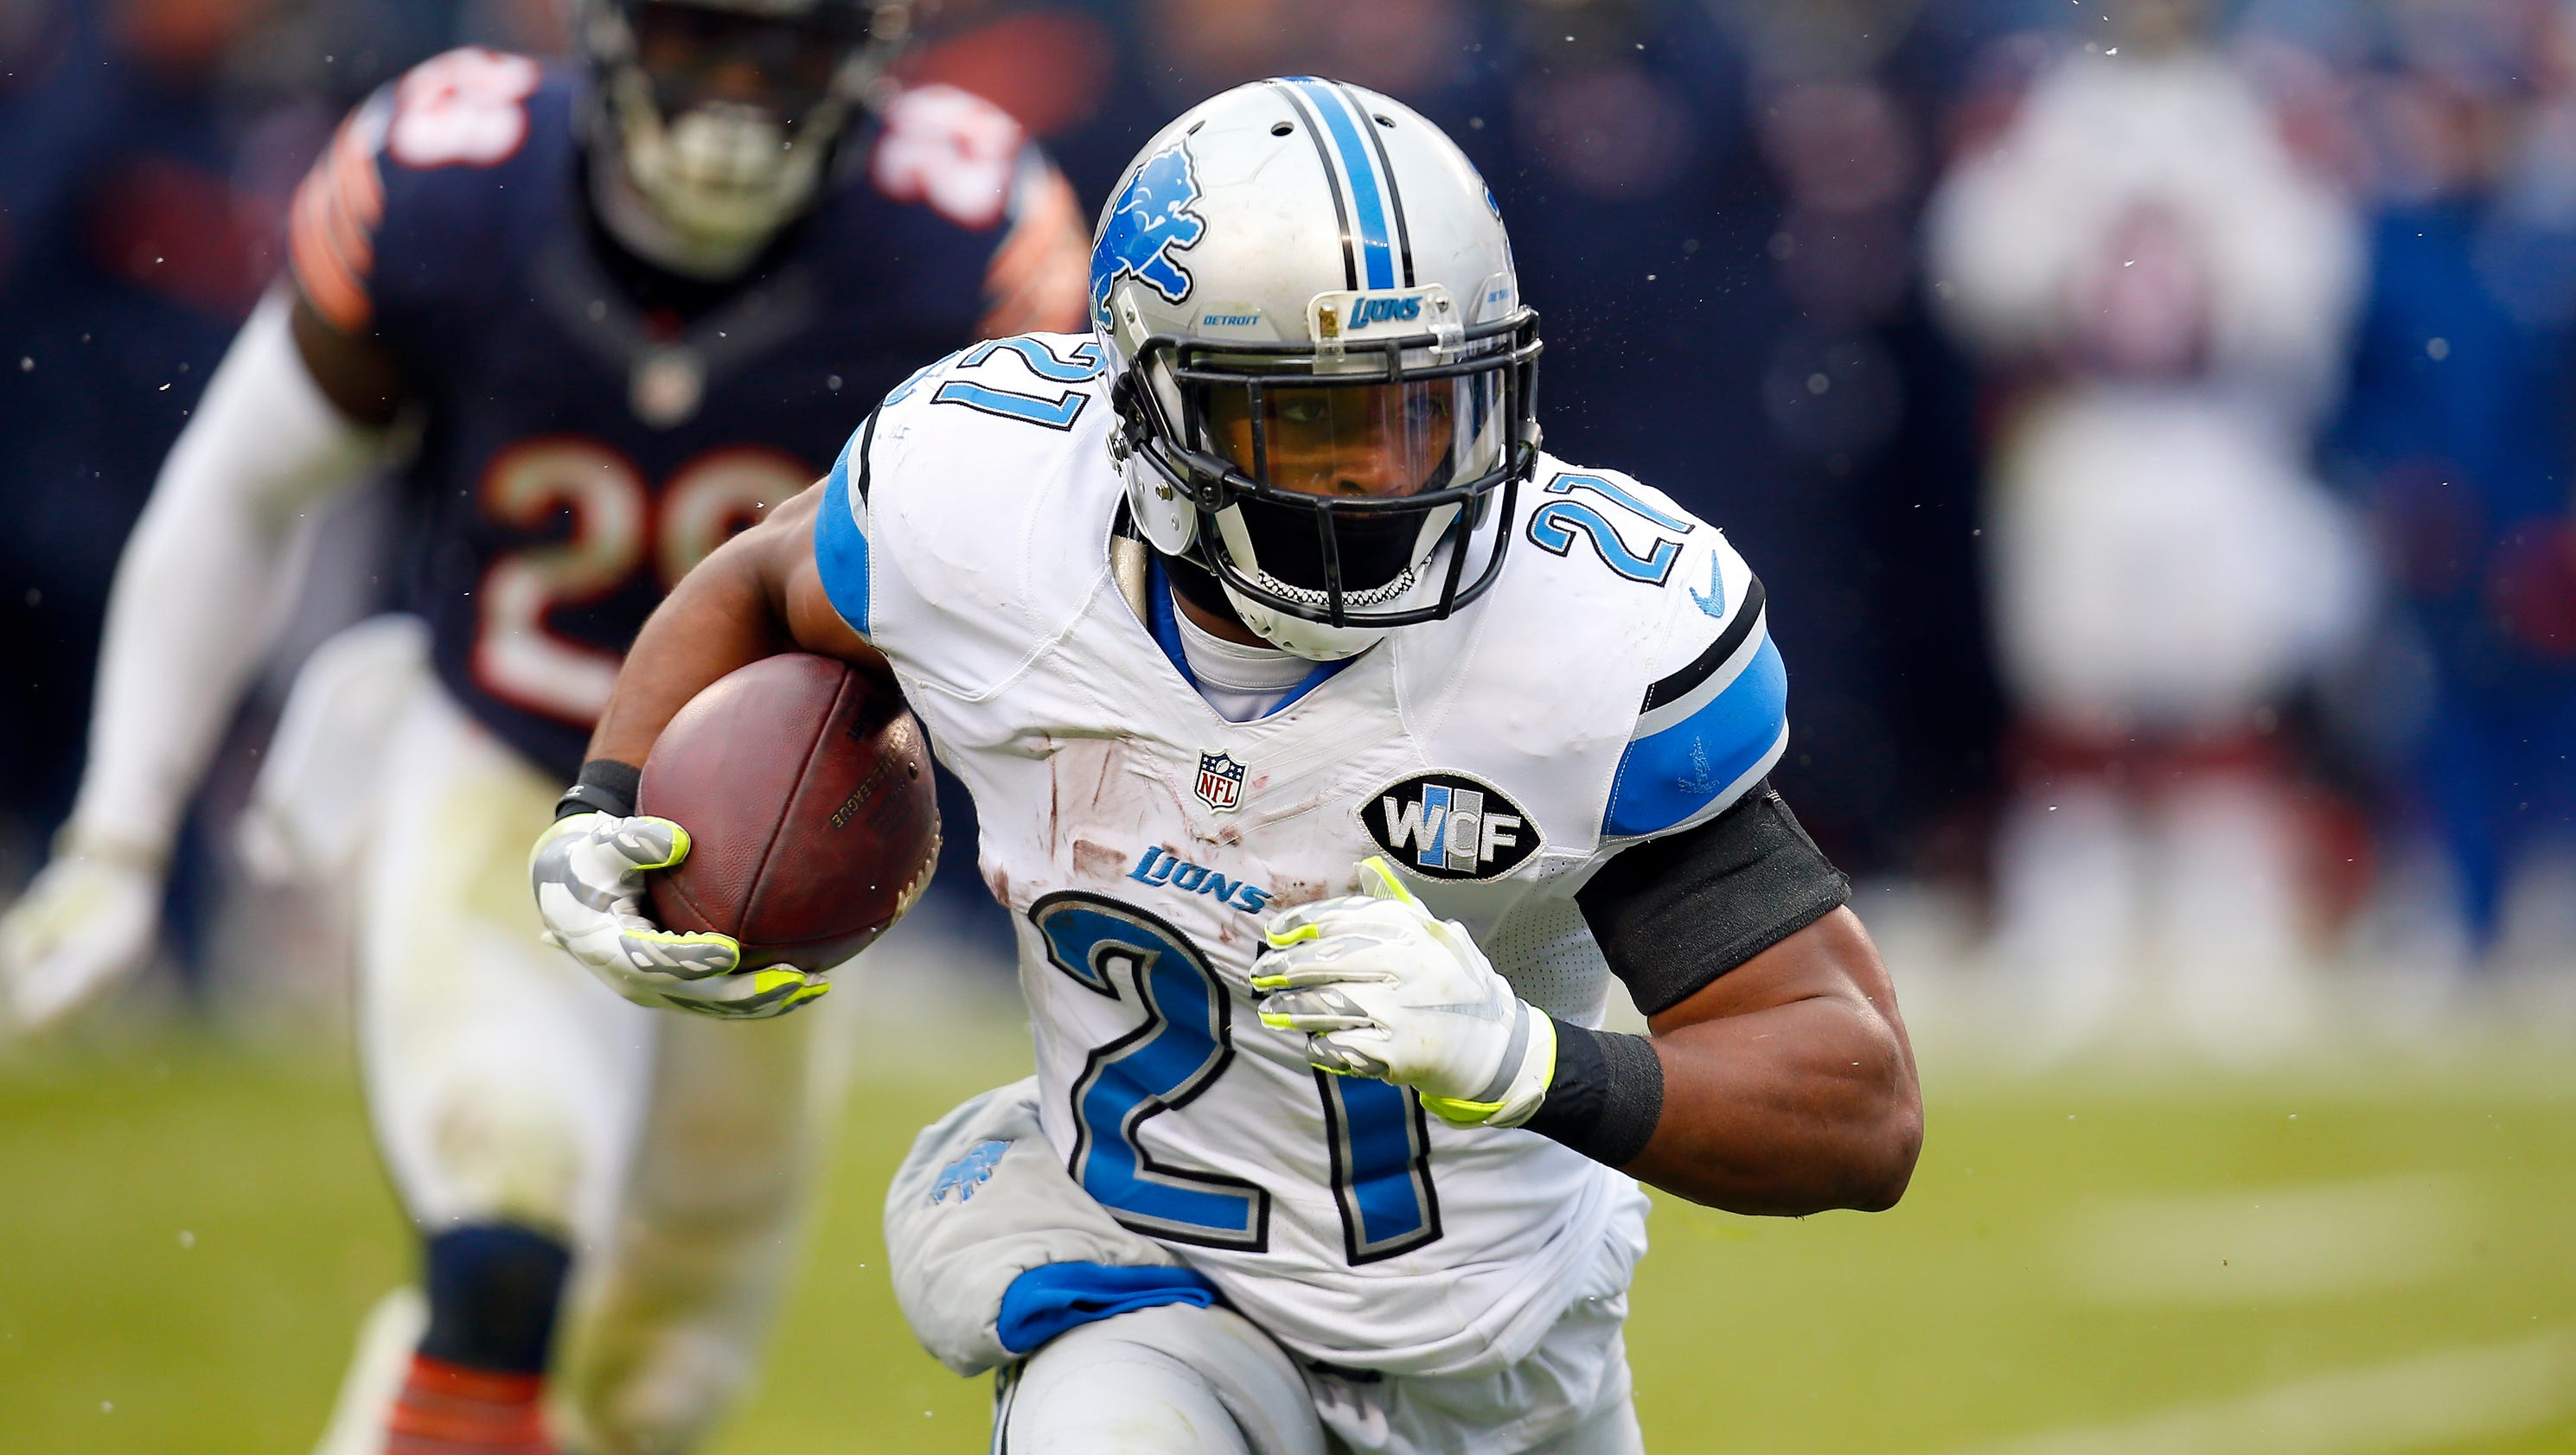 ameer abdullah Ameer abdullah sits out preseason finale ameer abdullah did not play in the lions final preseason game on thursday night fantasy impact there was a lot of talk prior to the game that abdullah.